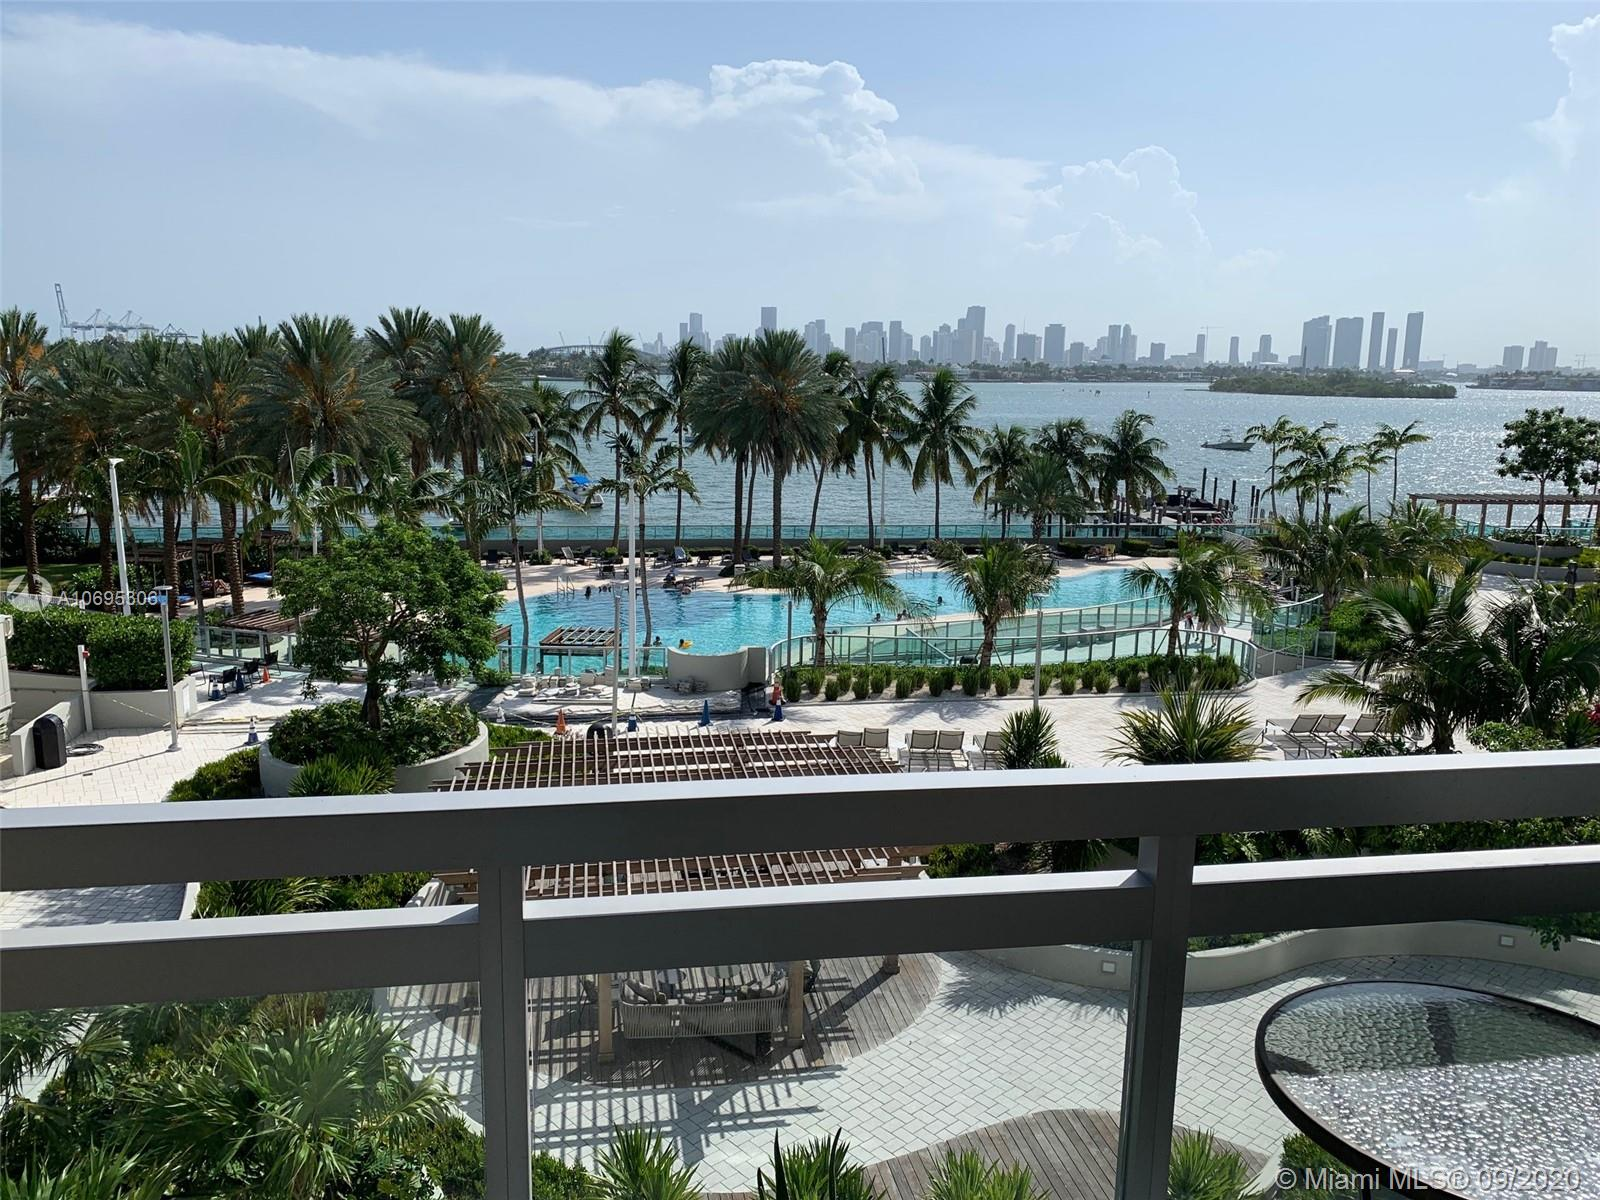 Flamingo South Beach #416S - 1500 Bay Rd #416S, Miami Beach, FL 33139